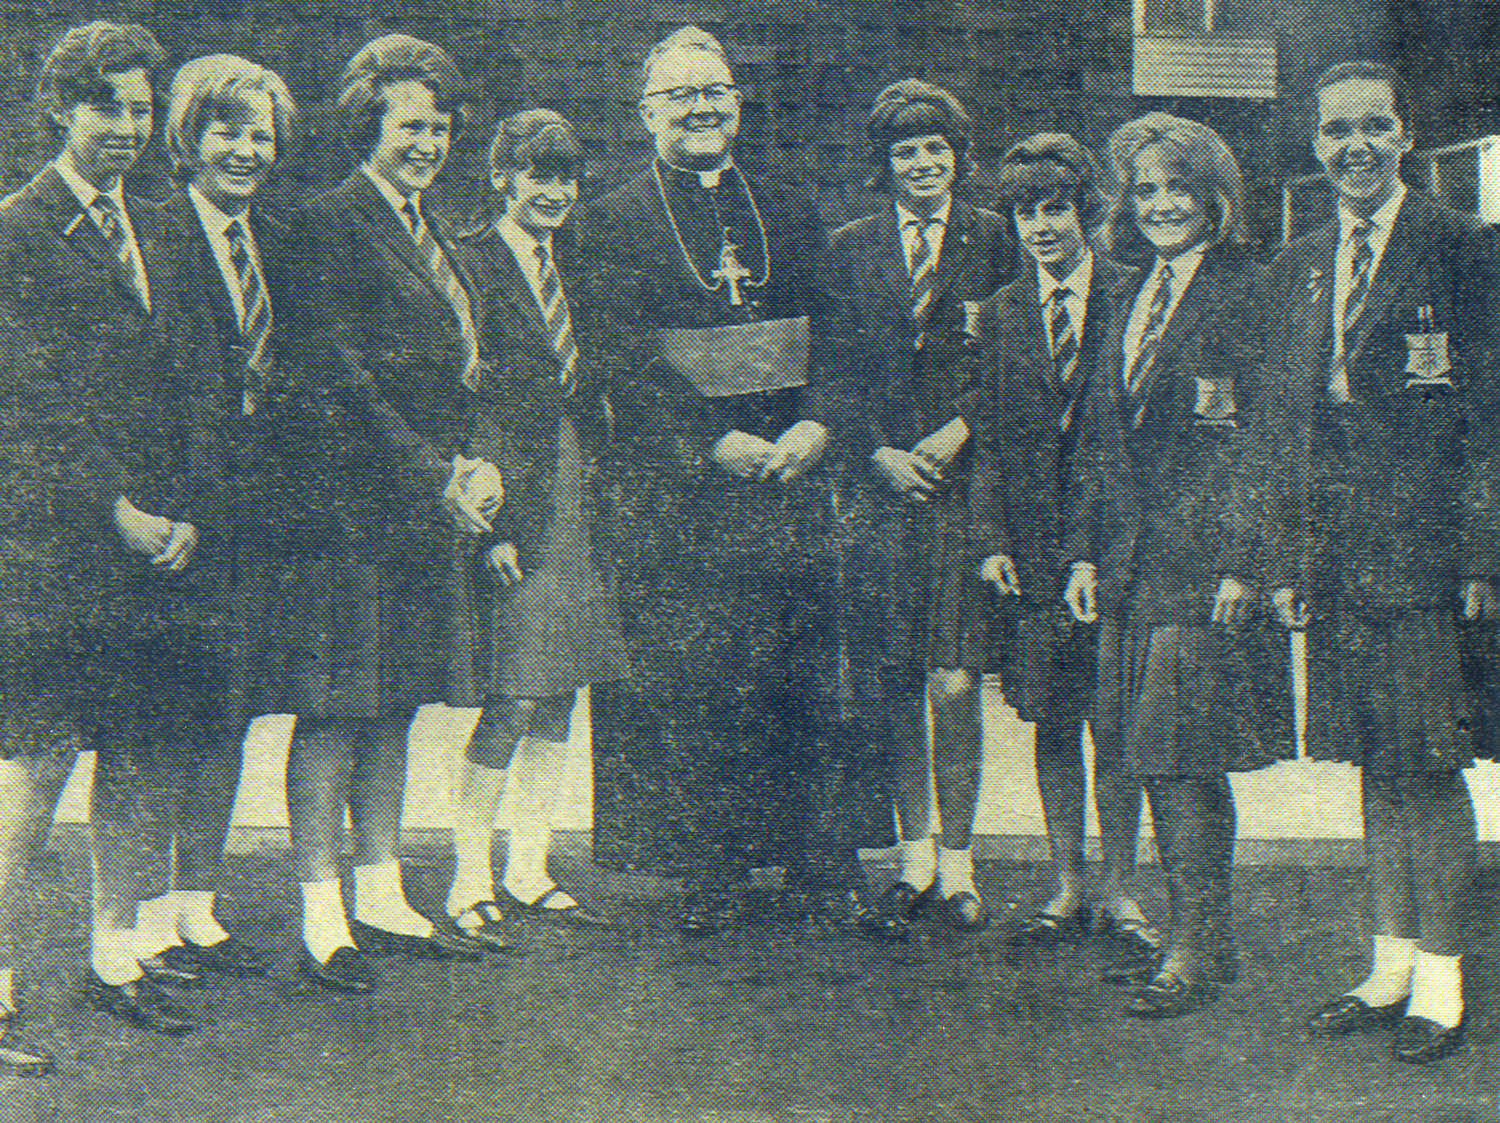 Photo: Bishop Dwyer talks with St. Mary's pupils after performing the official opening, 3 July 1965  LEFT TO RIGHT: Josephine Joyce, Ruth Copsey, Brenda Hope, Marilyn Dix, Anne Mahon, Stella Kent, Kathleen Lawson and Rosaleen Doran  Photograph kindly donated by Rosaleen Doran (Fisher) Head Girl